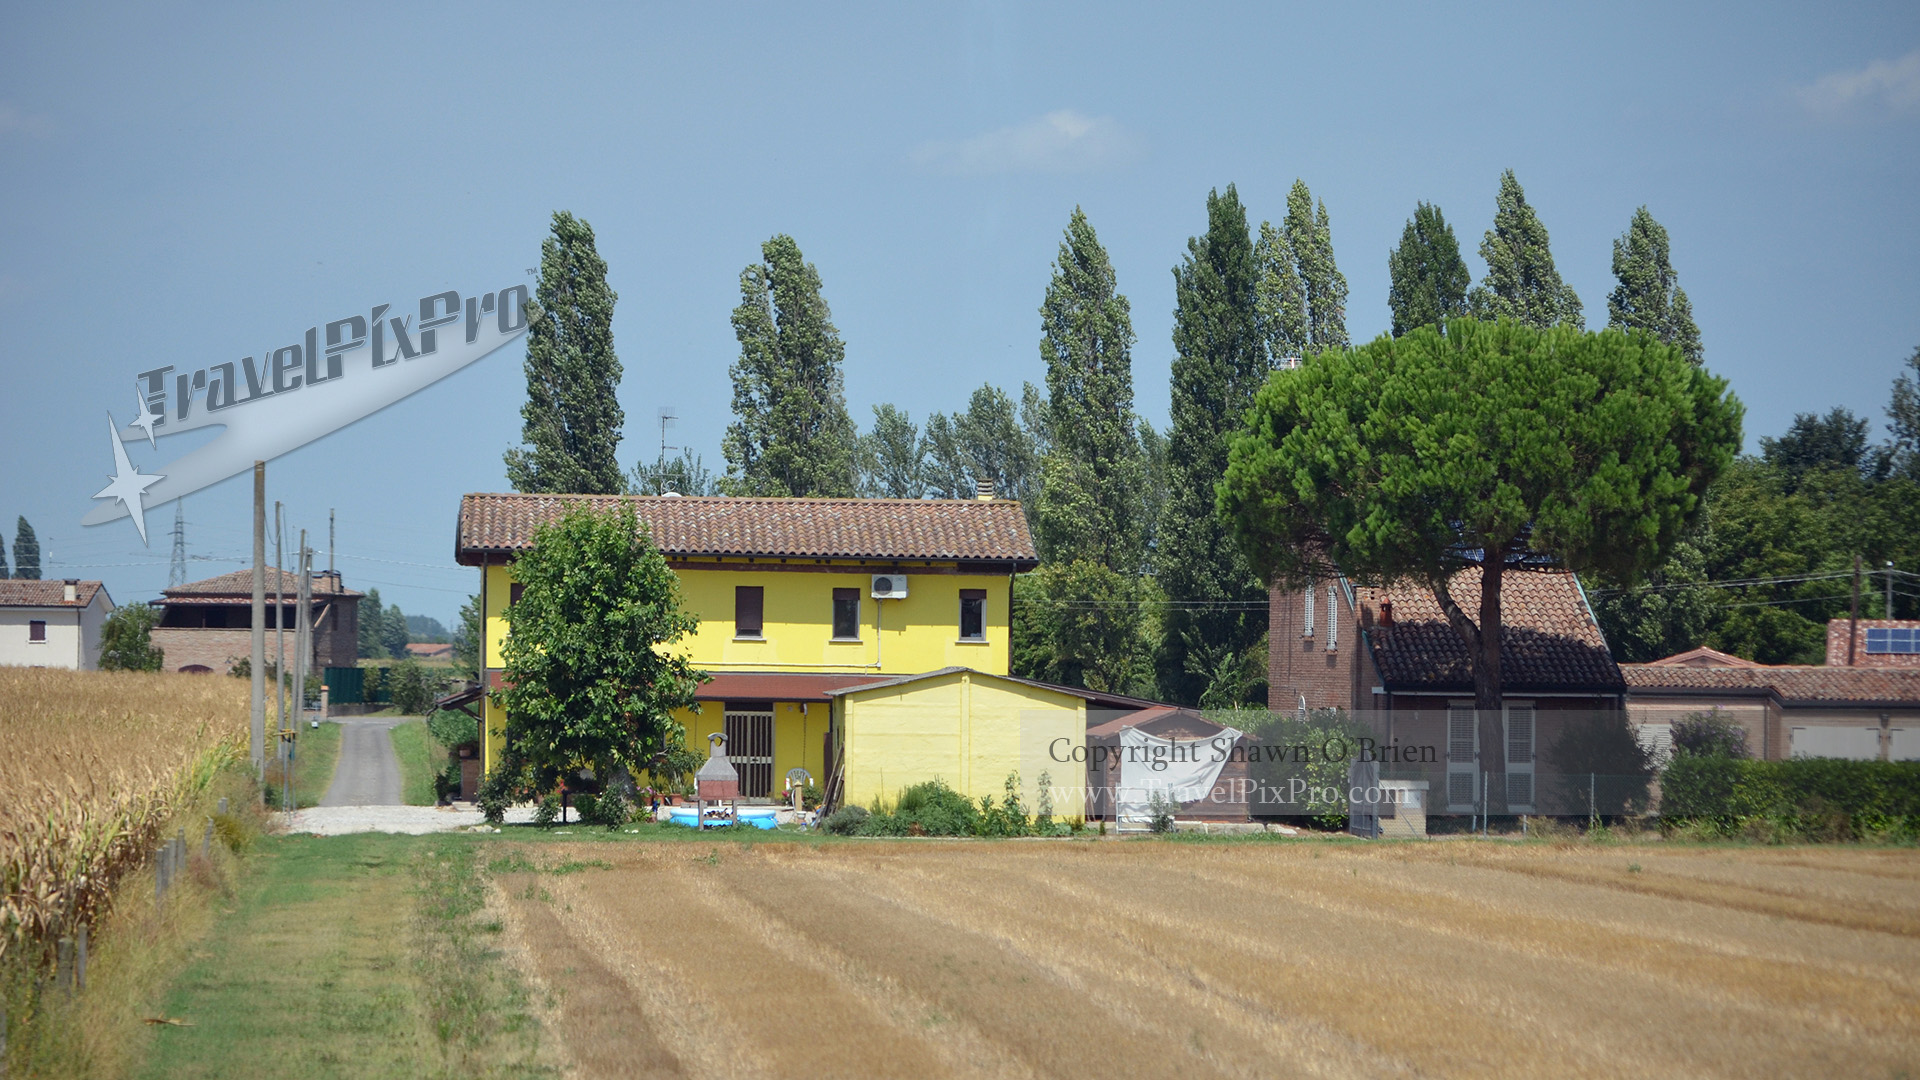 Italian Farmhouse